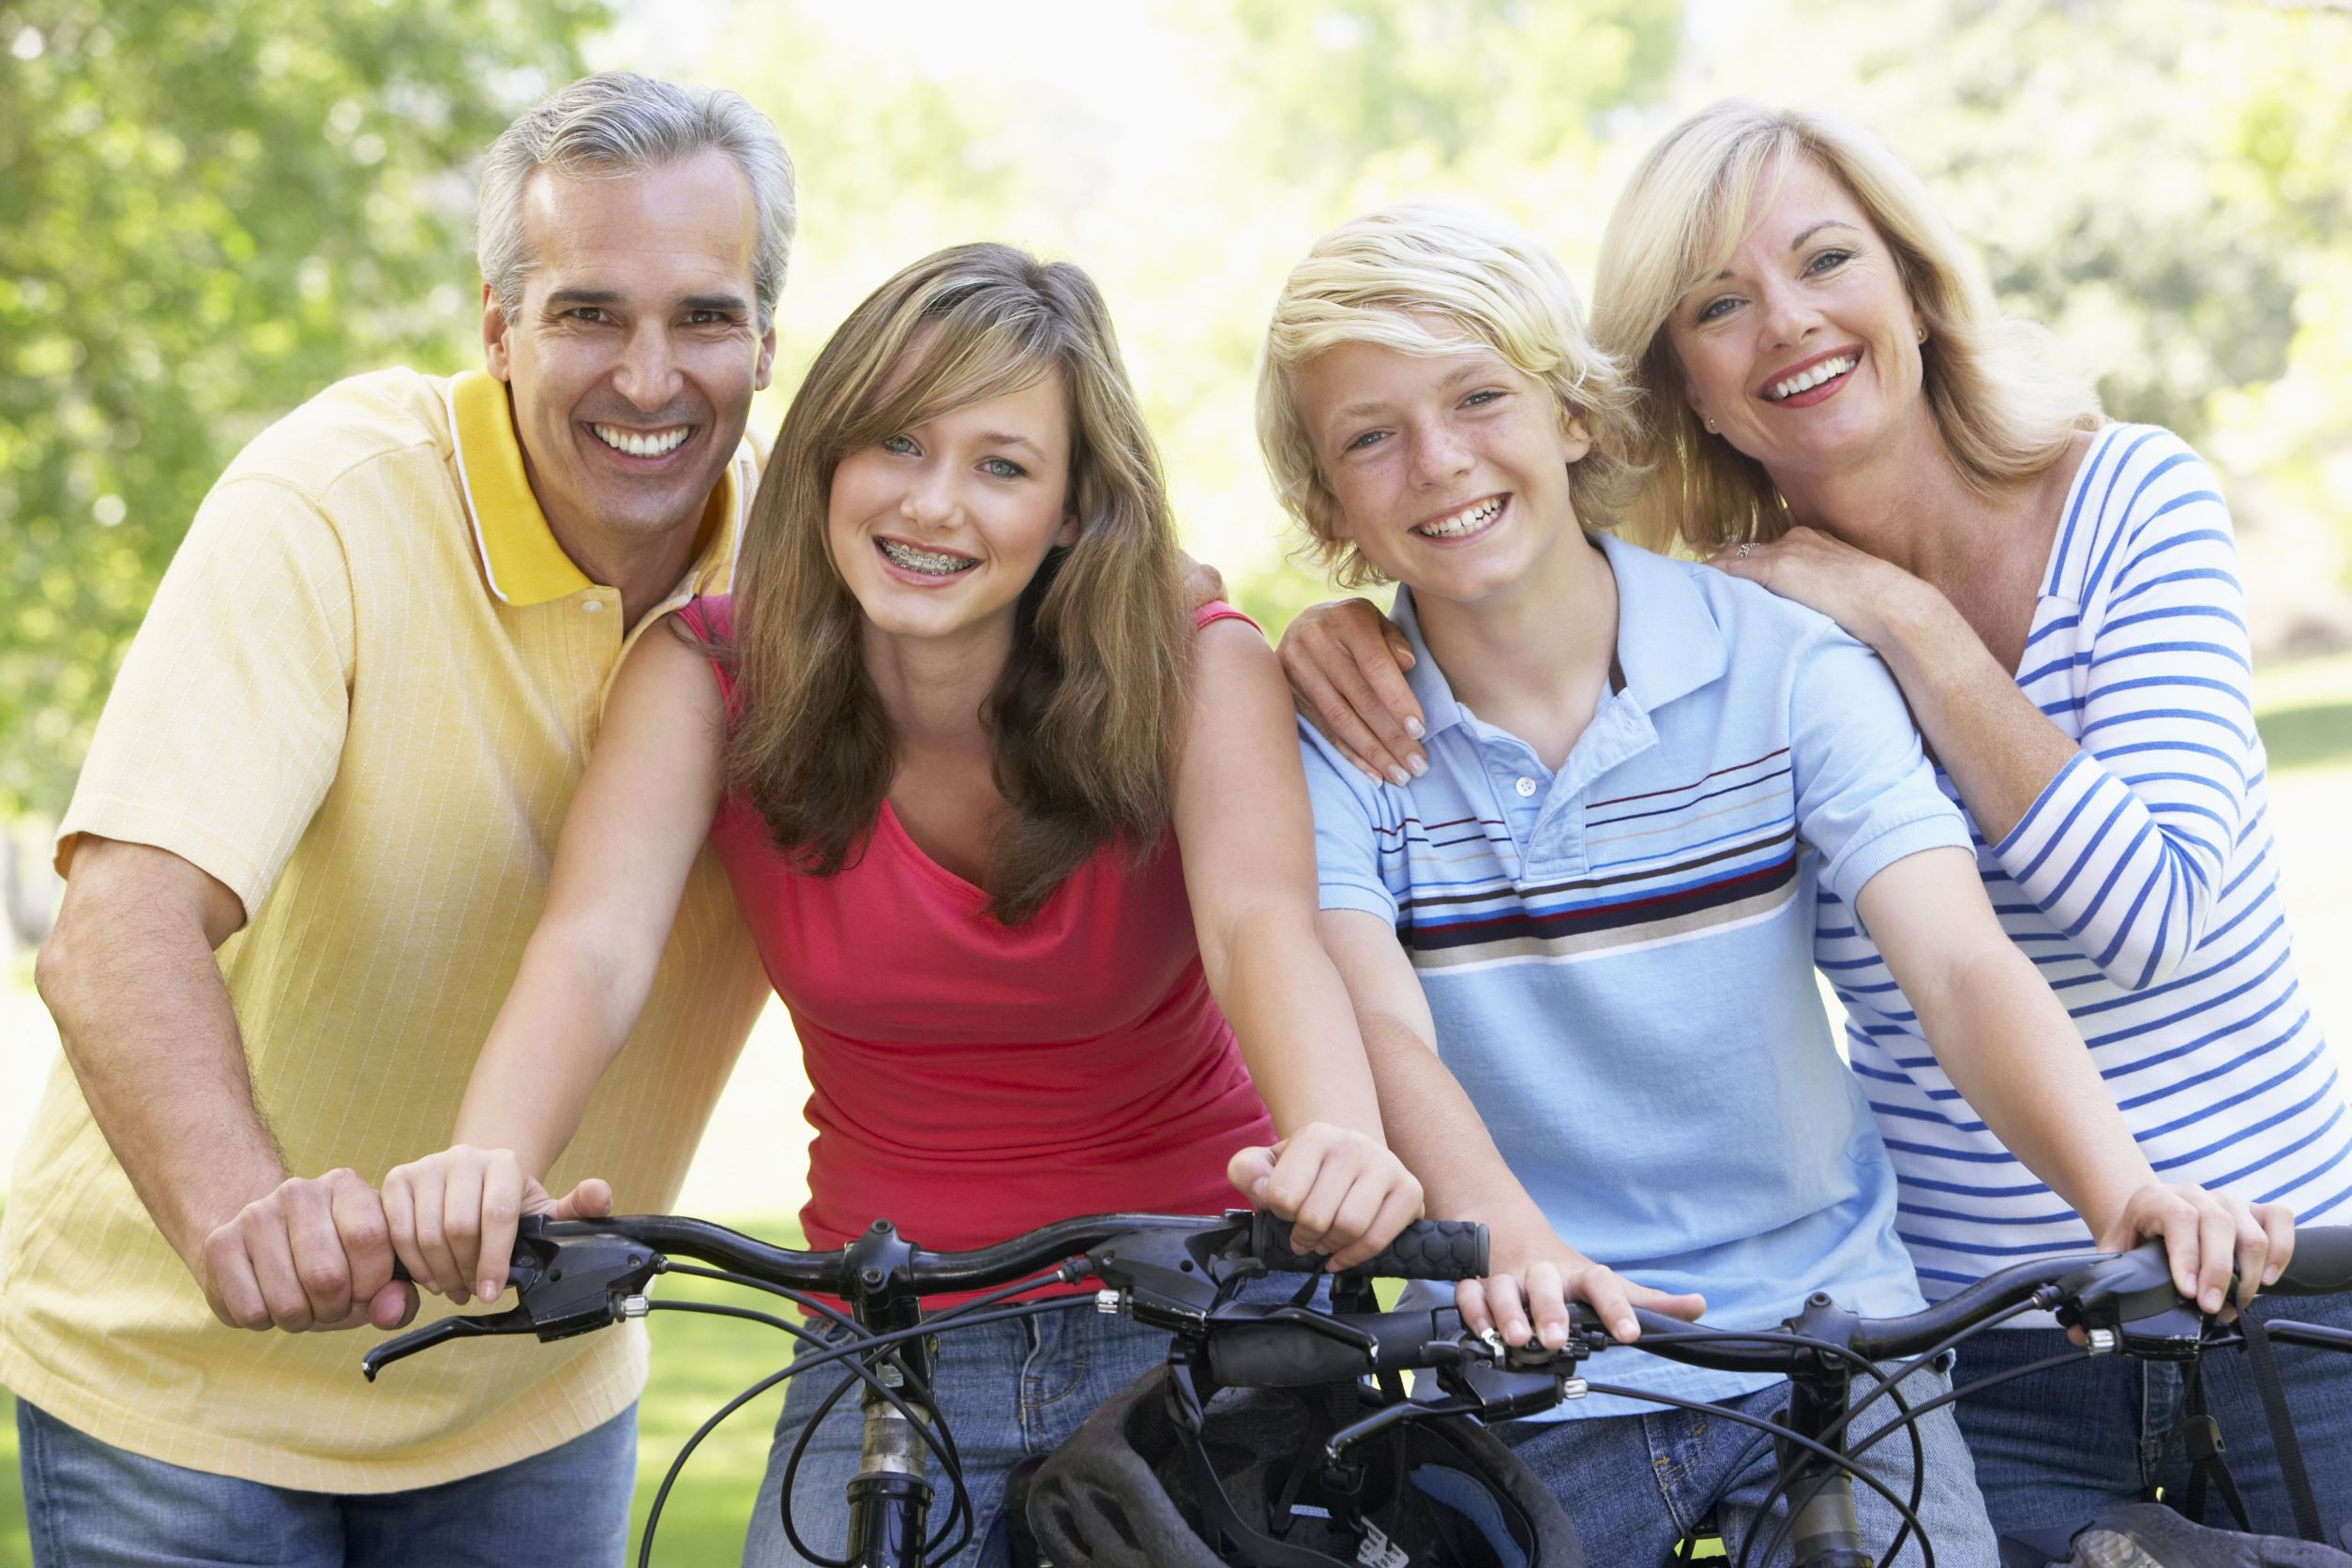 Family smiling and riding bicycles